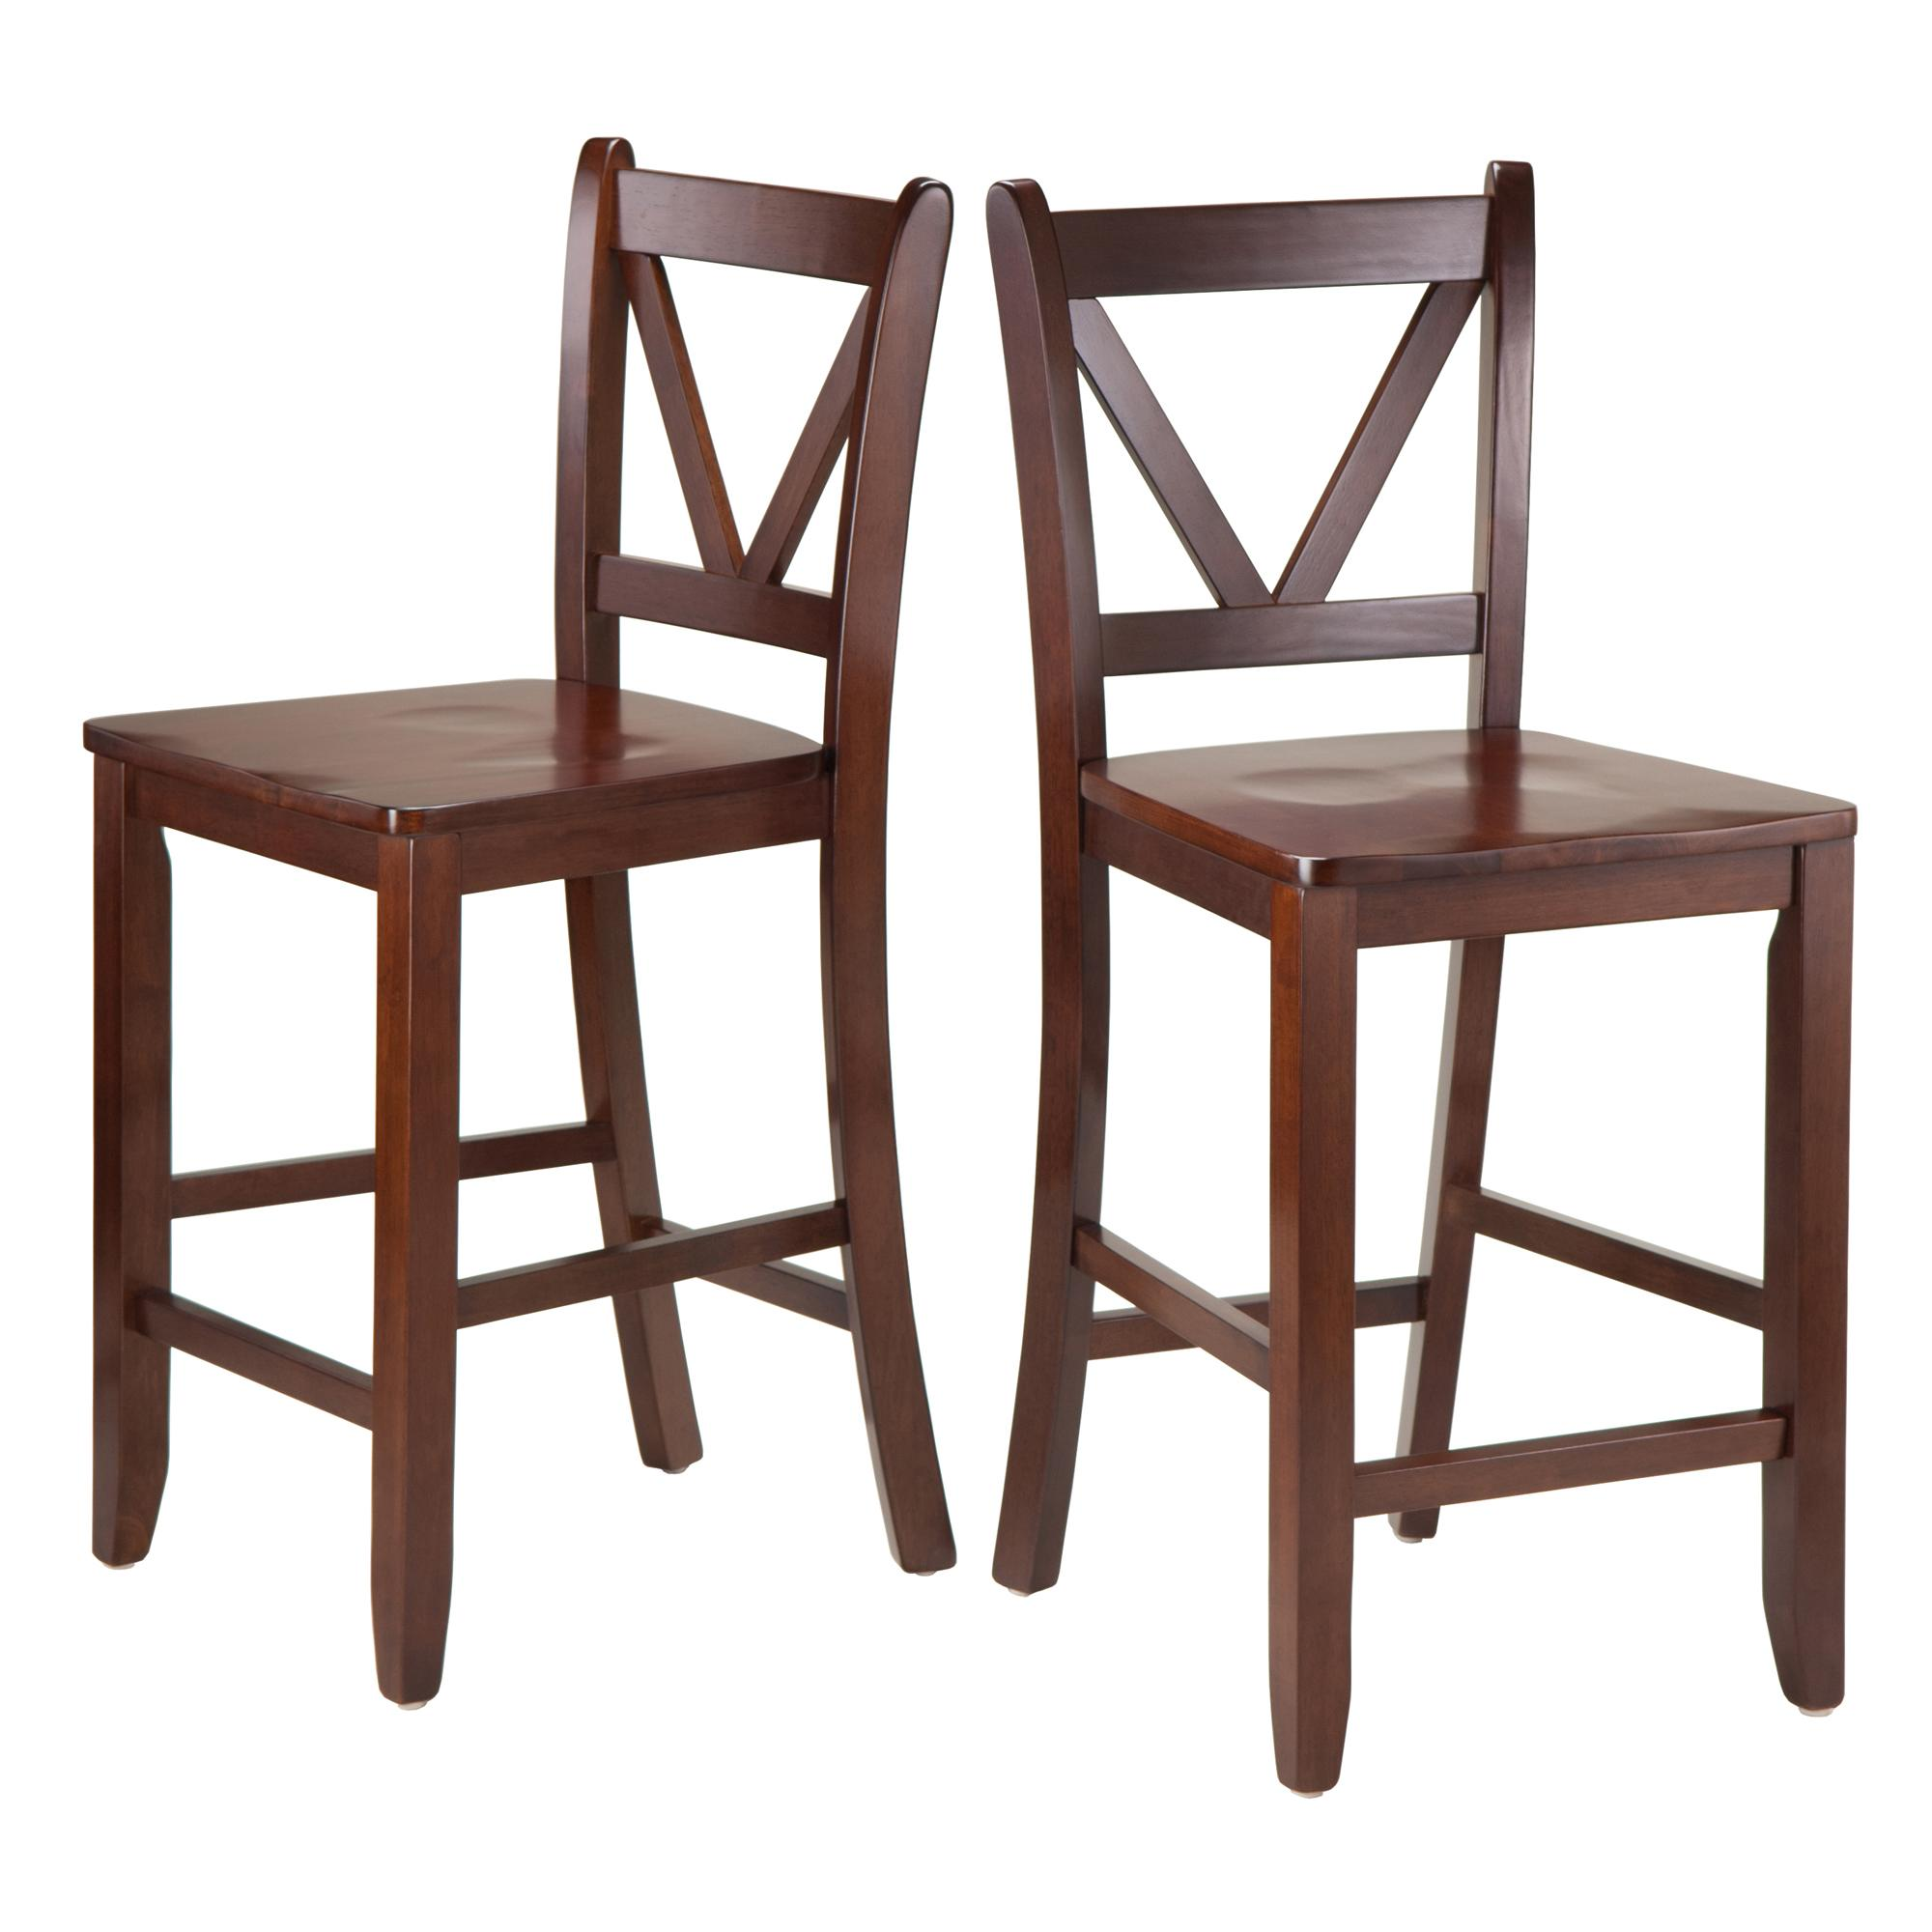 View larger  sc 1 st  Amazon.com & Amazon.com: Winsome Victor 2-Piece V-Back Counter Stools 24-Inch ... islam-shia.org